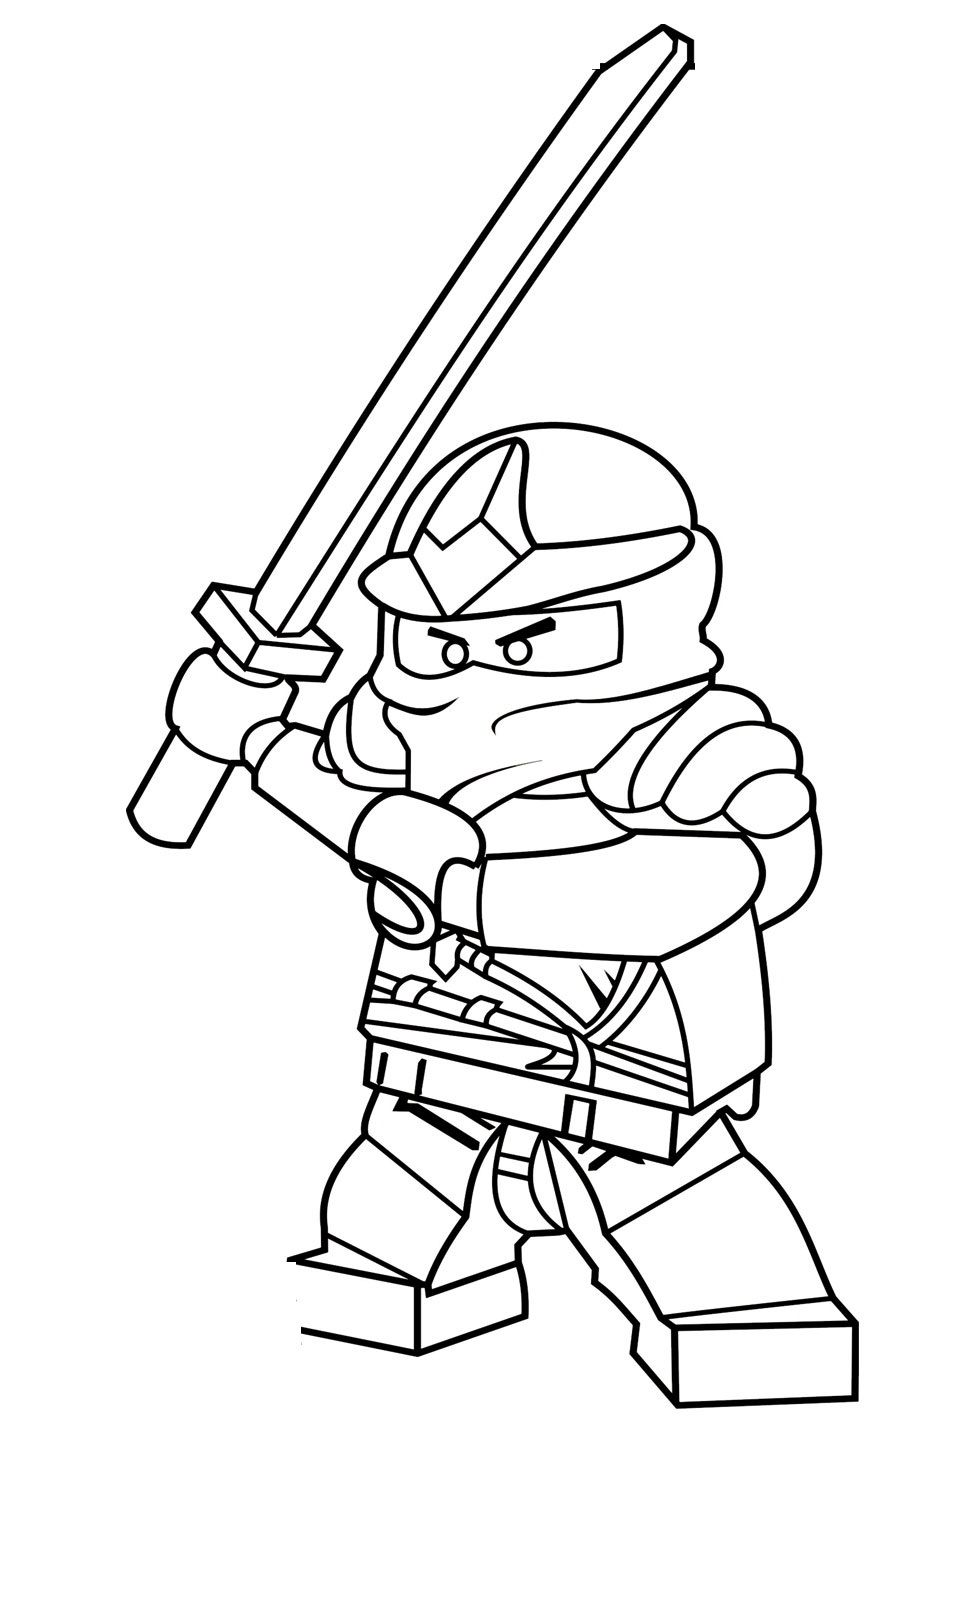 Free Printable Ninjago Coloring Pages For Kids | Colorear y Dibujo